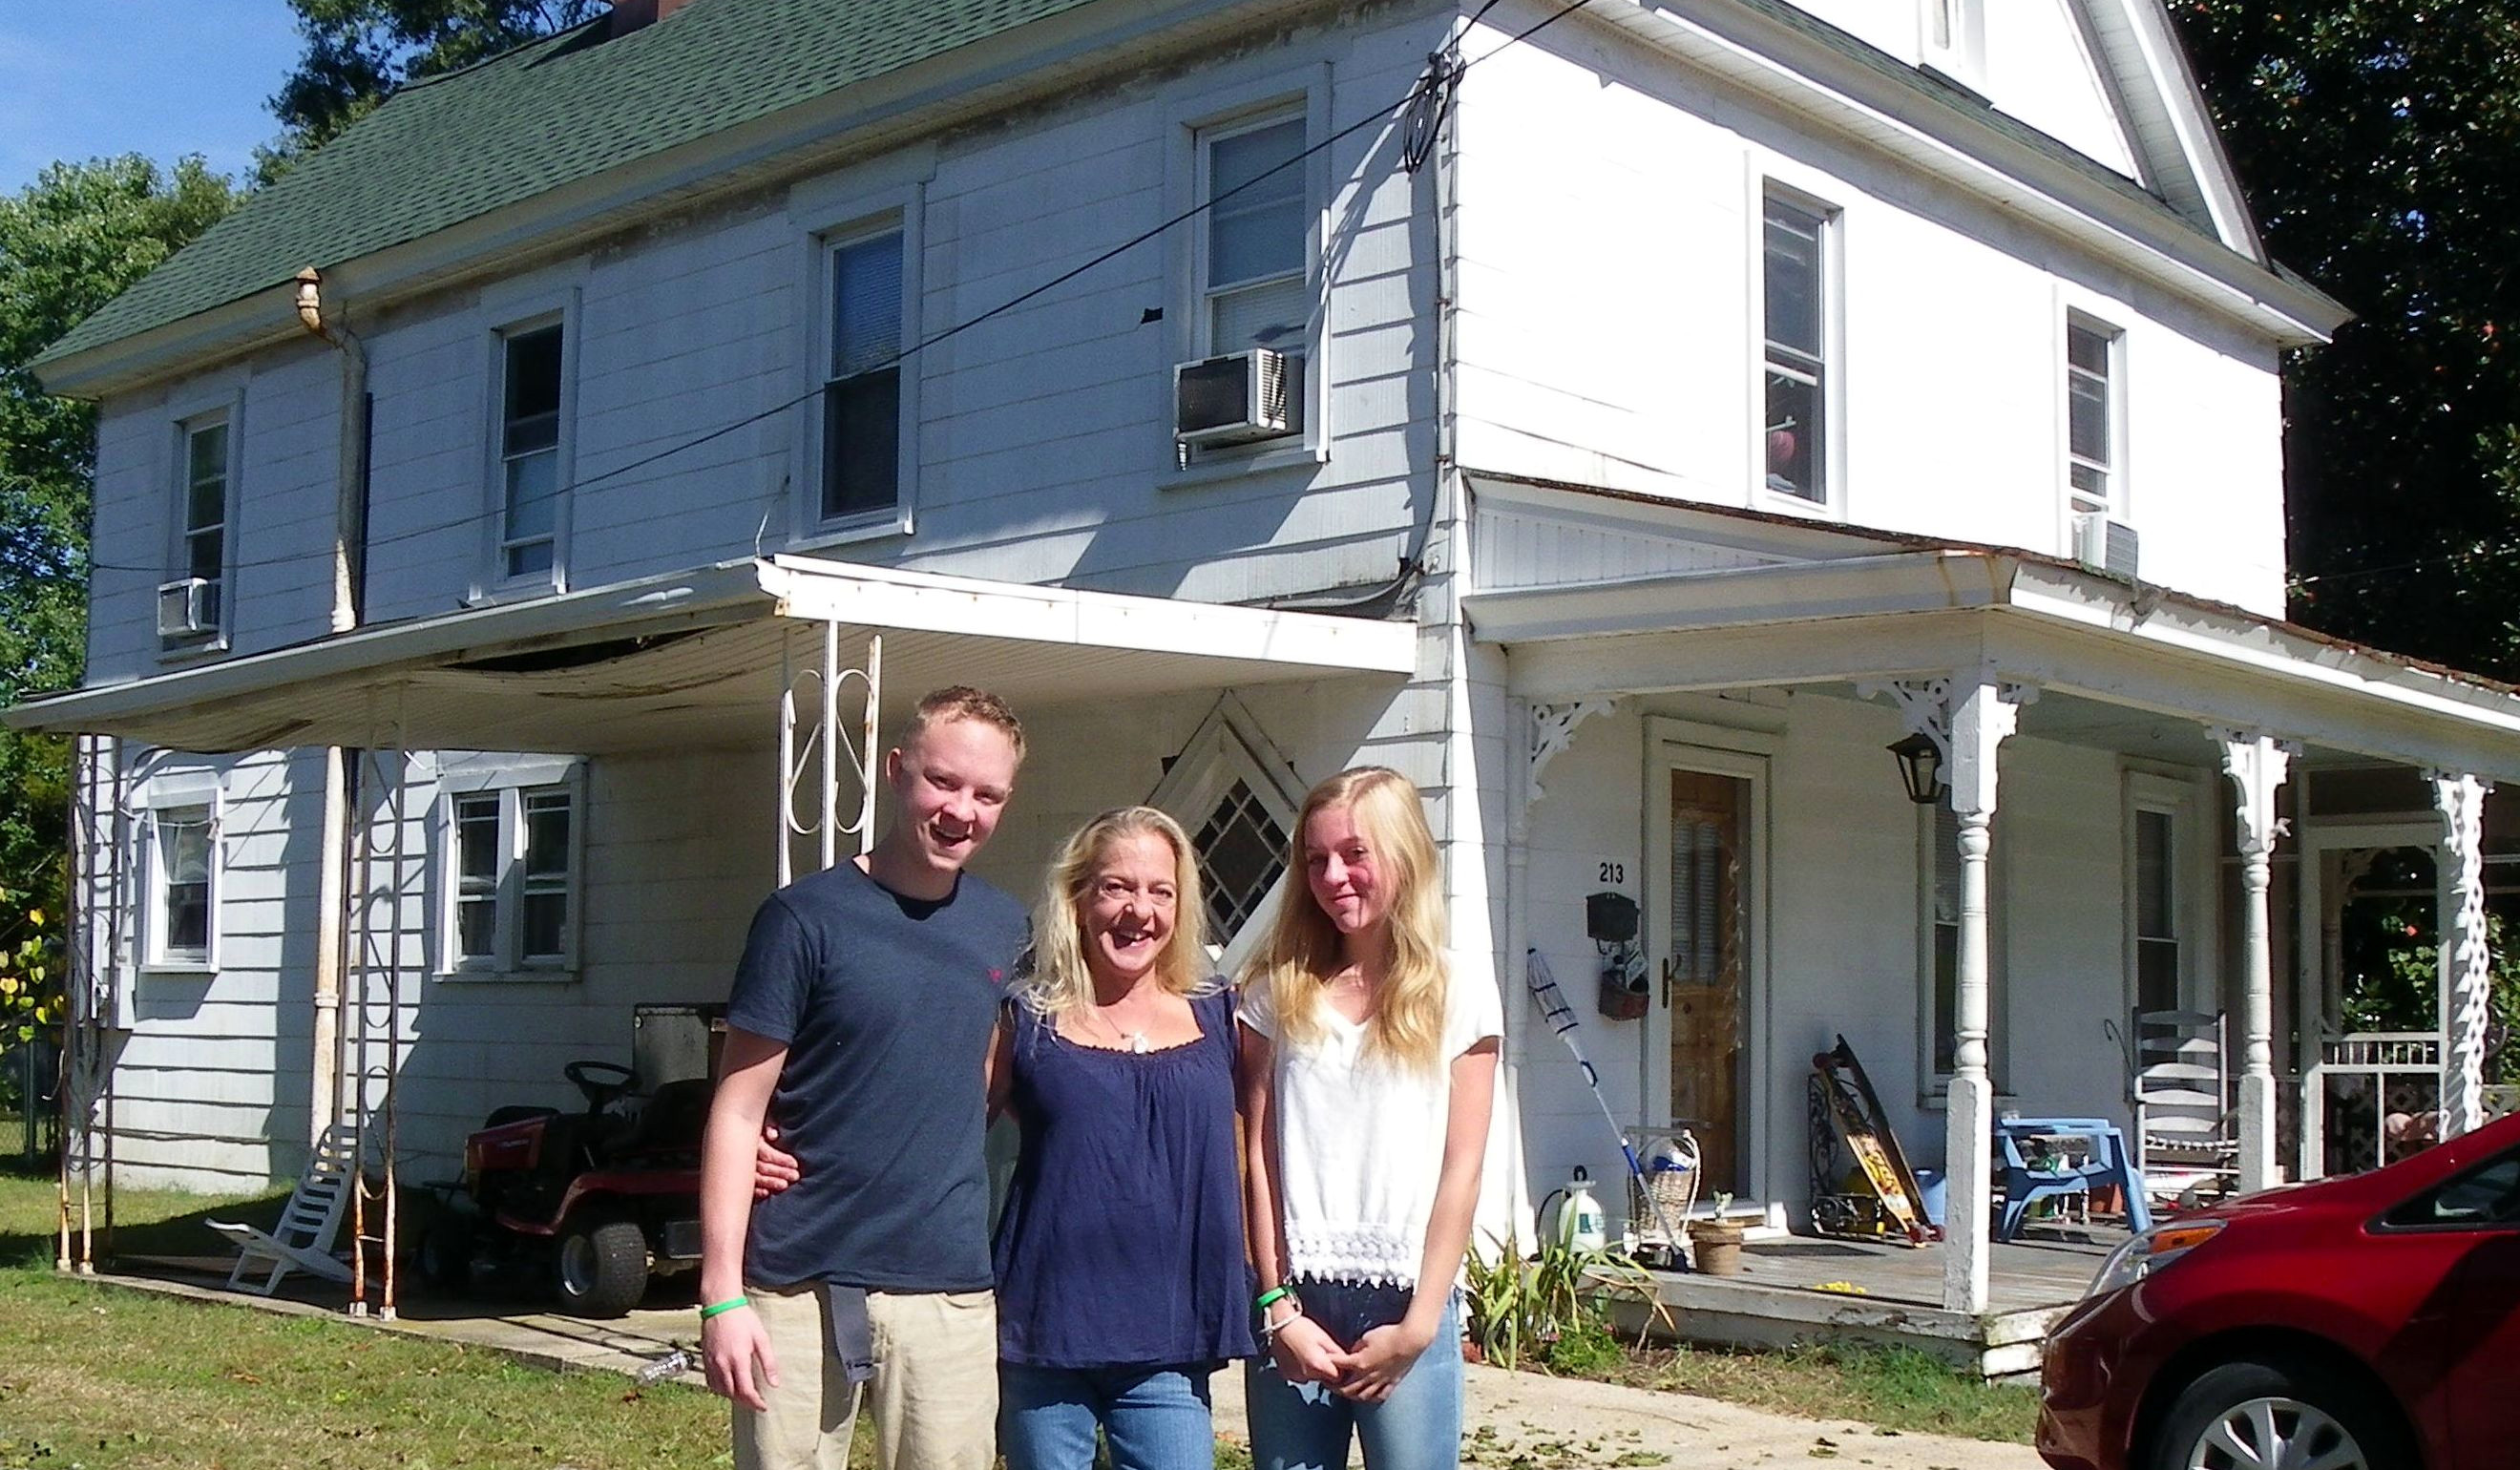 a mother and her son and daughter stand closely together in front of their renovated home